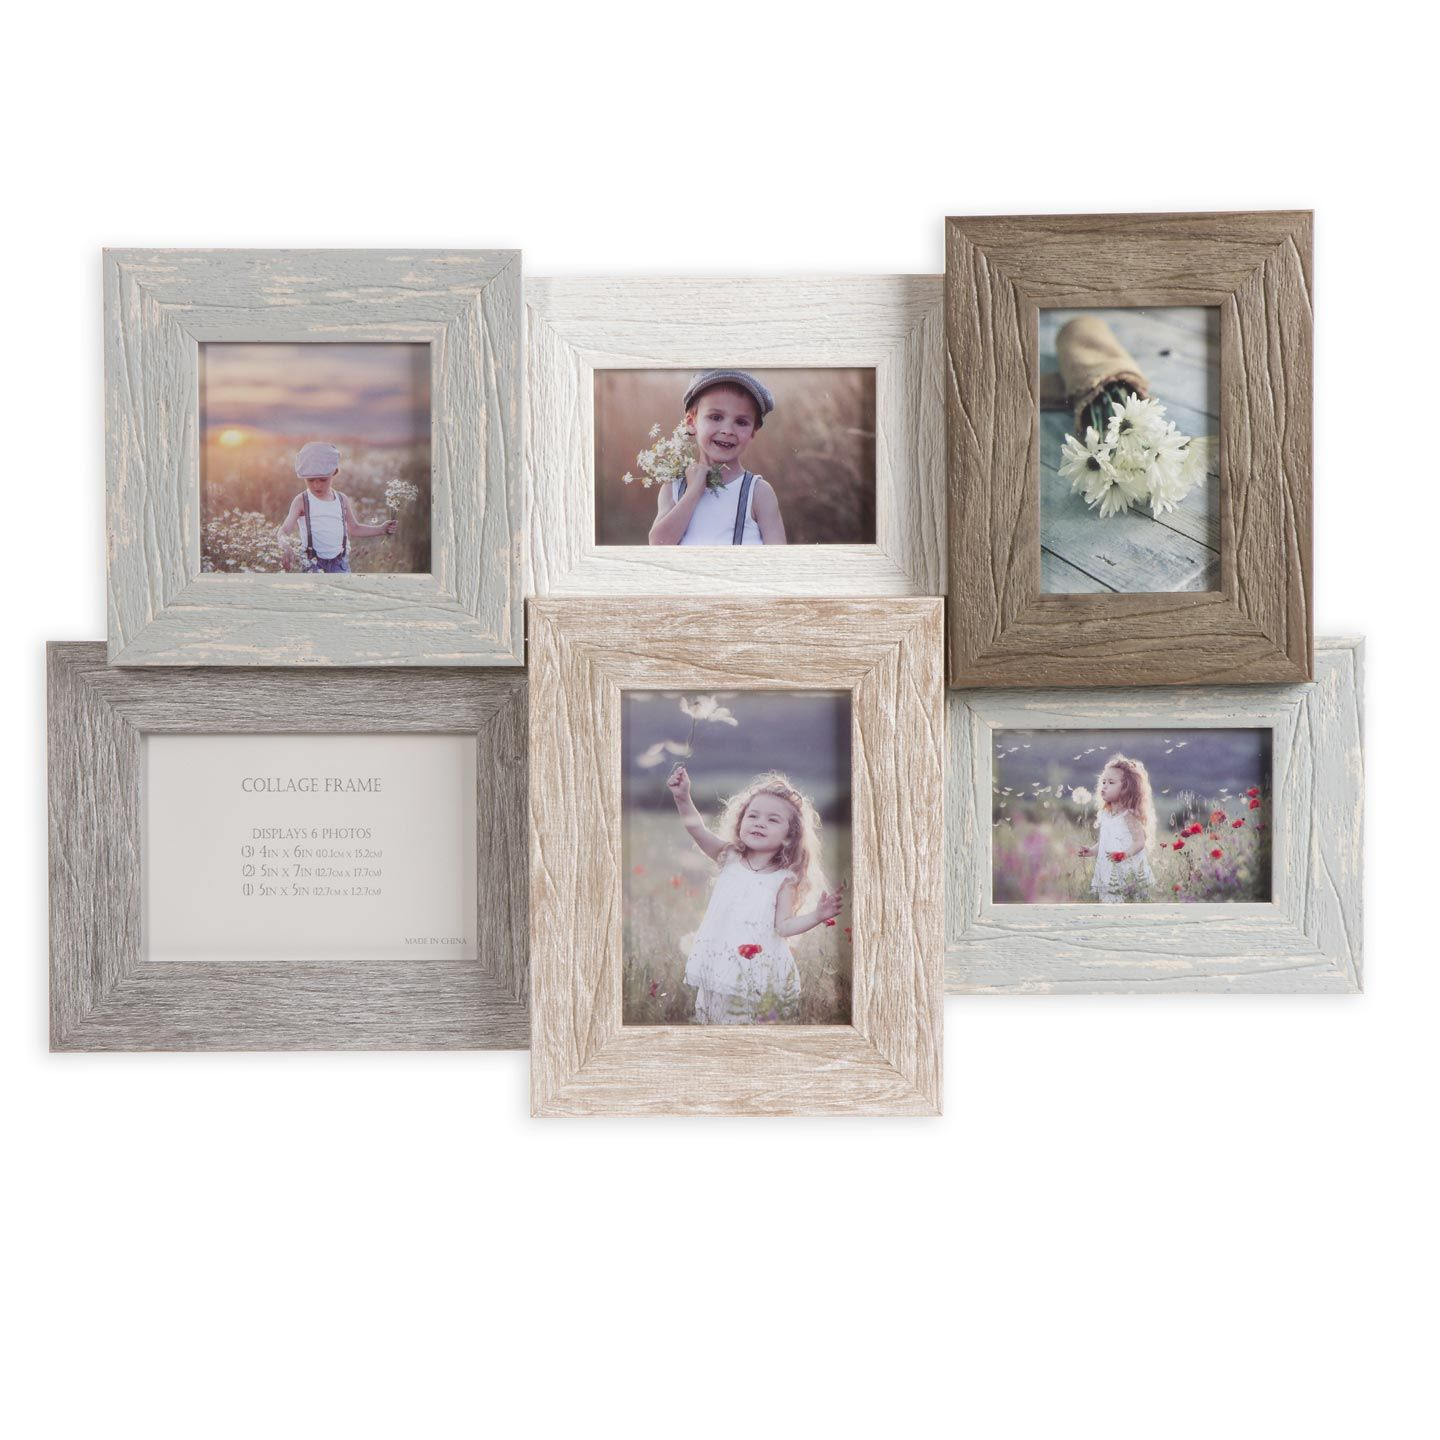 Give Wall Displays A Chic Look With This 6 Photo Collage Frame The Durable Wood Construction Ensure Collage Frames Framed Photo Collage Collage Picture Frames